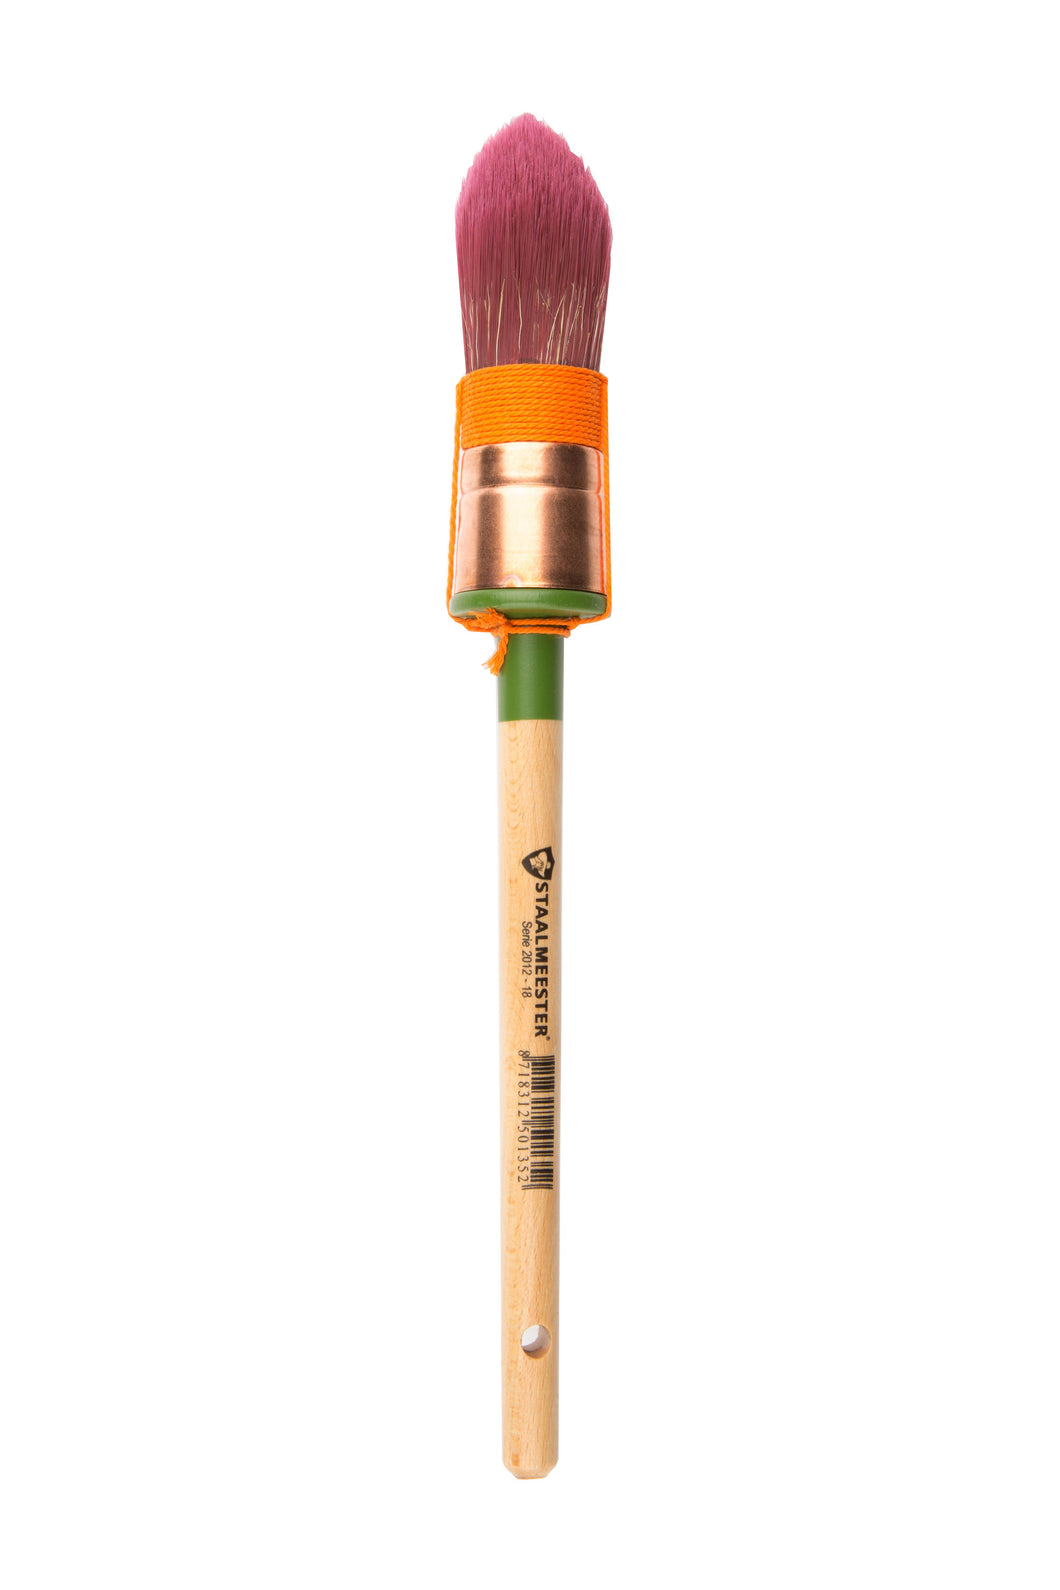 Pointed Sash #18 Staalmeester Brush